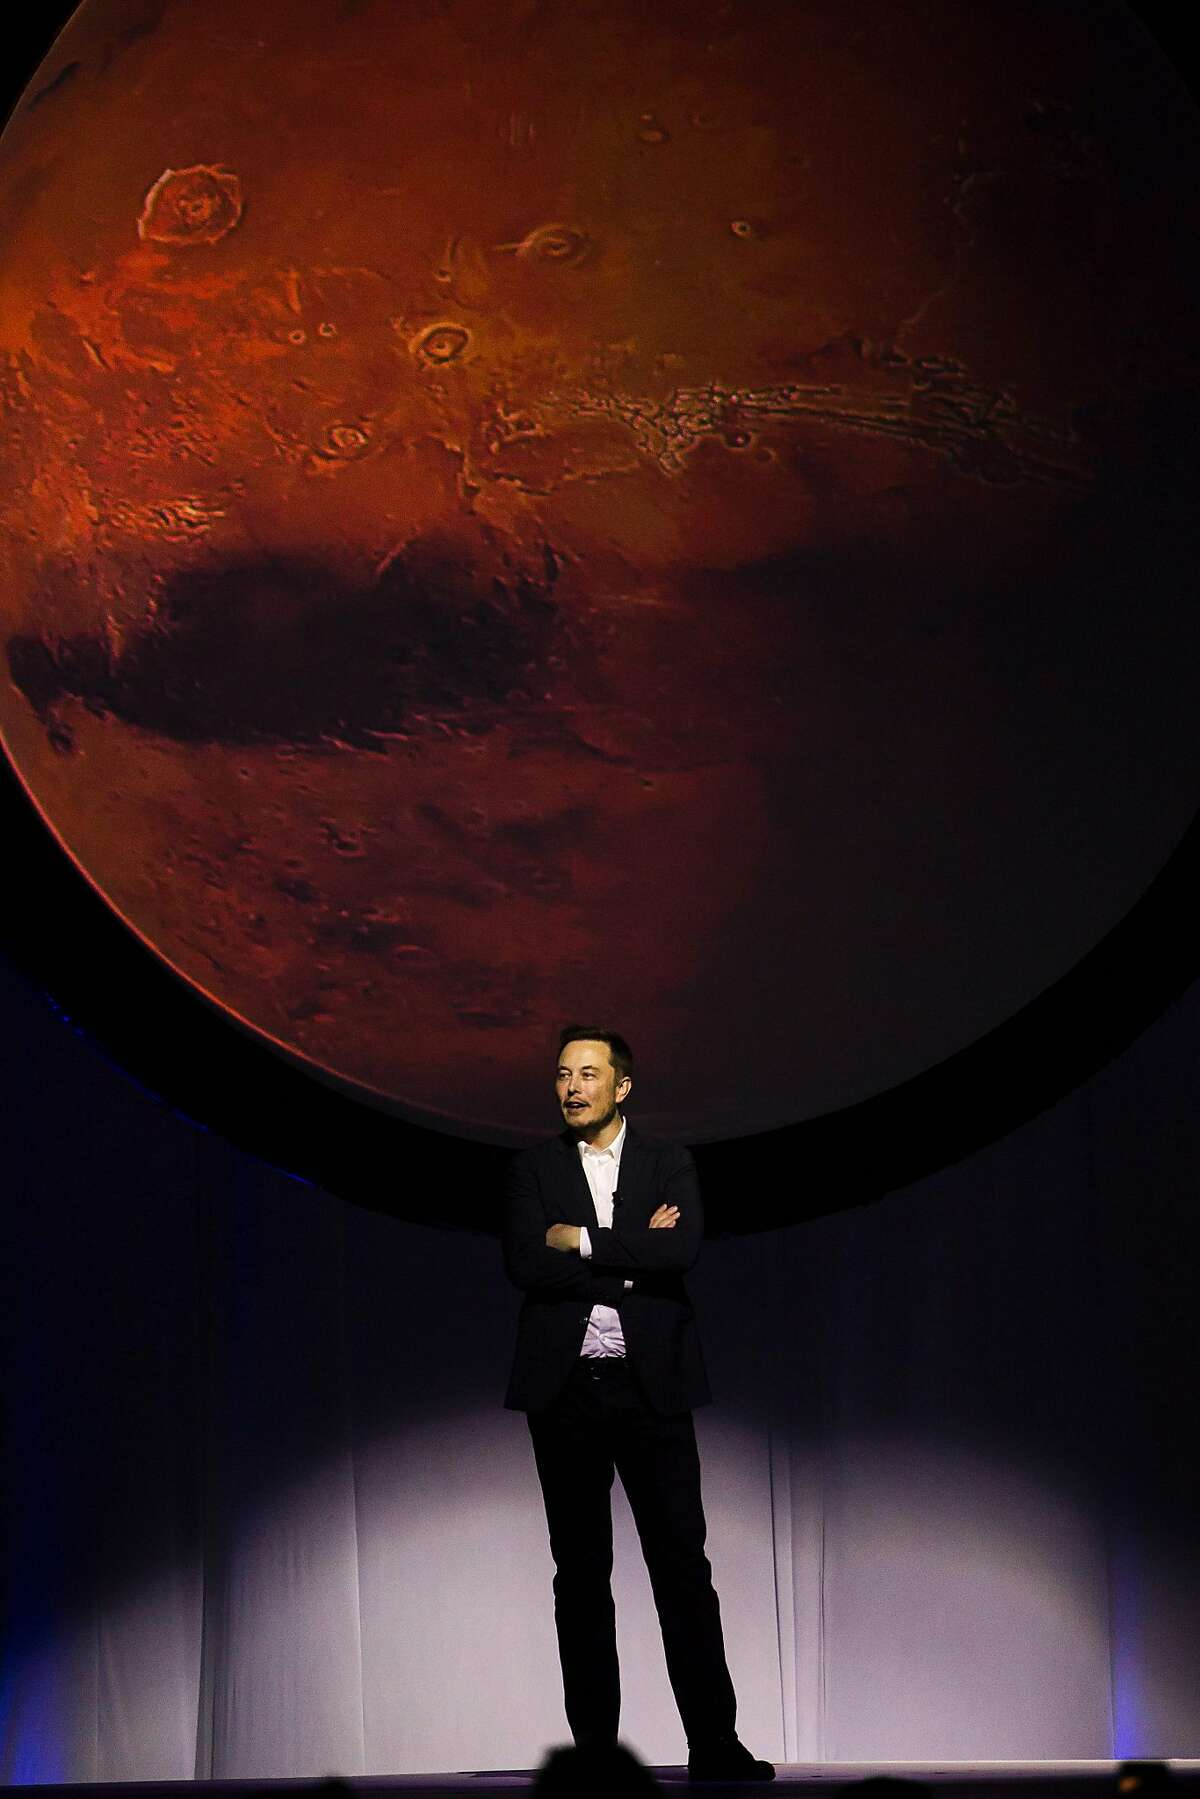 Tesla Motors CEO Elon Musk speaks about the Interplanetary Transport System which aims to reach Mars with the first human crew in history, in the conference he gave during the 67th International Astronautical Congress in Guadalajara, Mexico on September 27, 2016. / AFP PHOTO / Hector-GuerreroHECTOR-GUERRERO/AFP/Getty Images